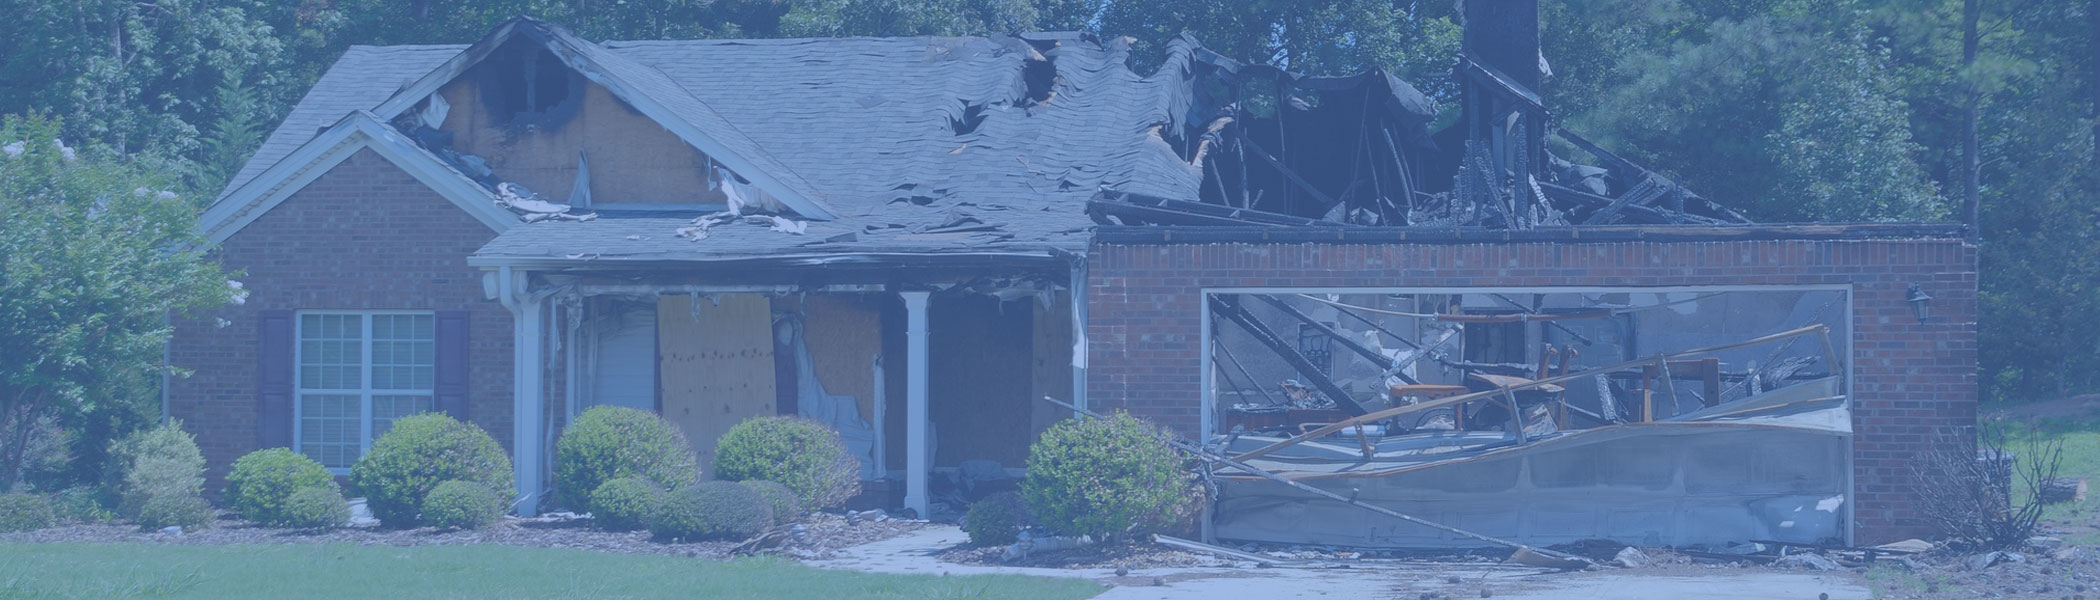 fire damage to home